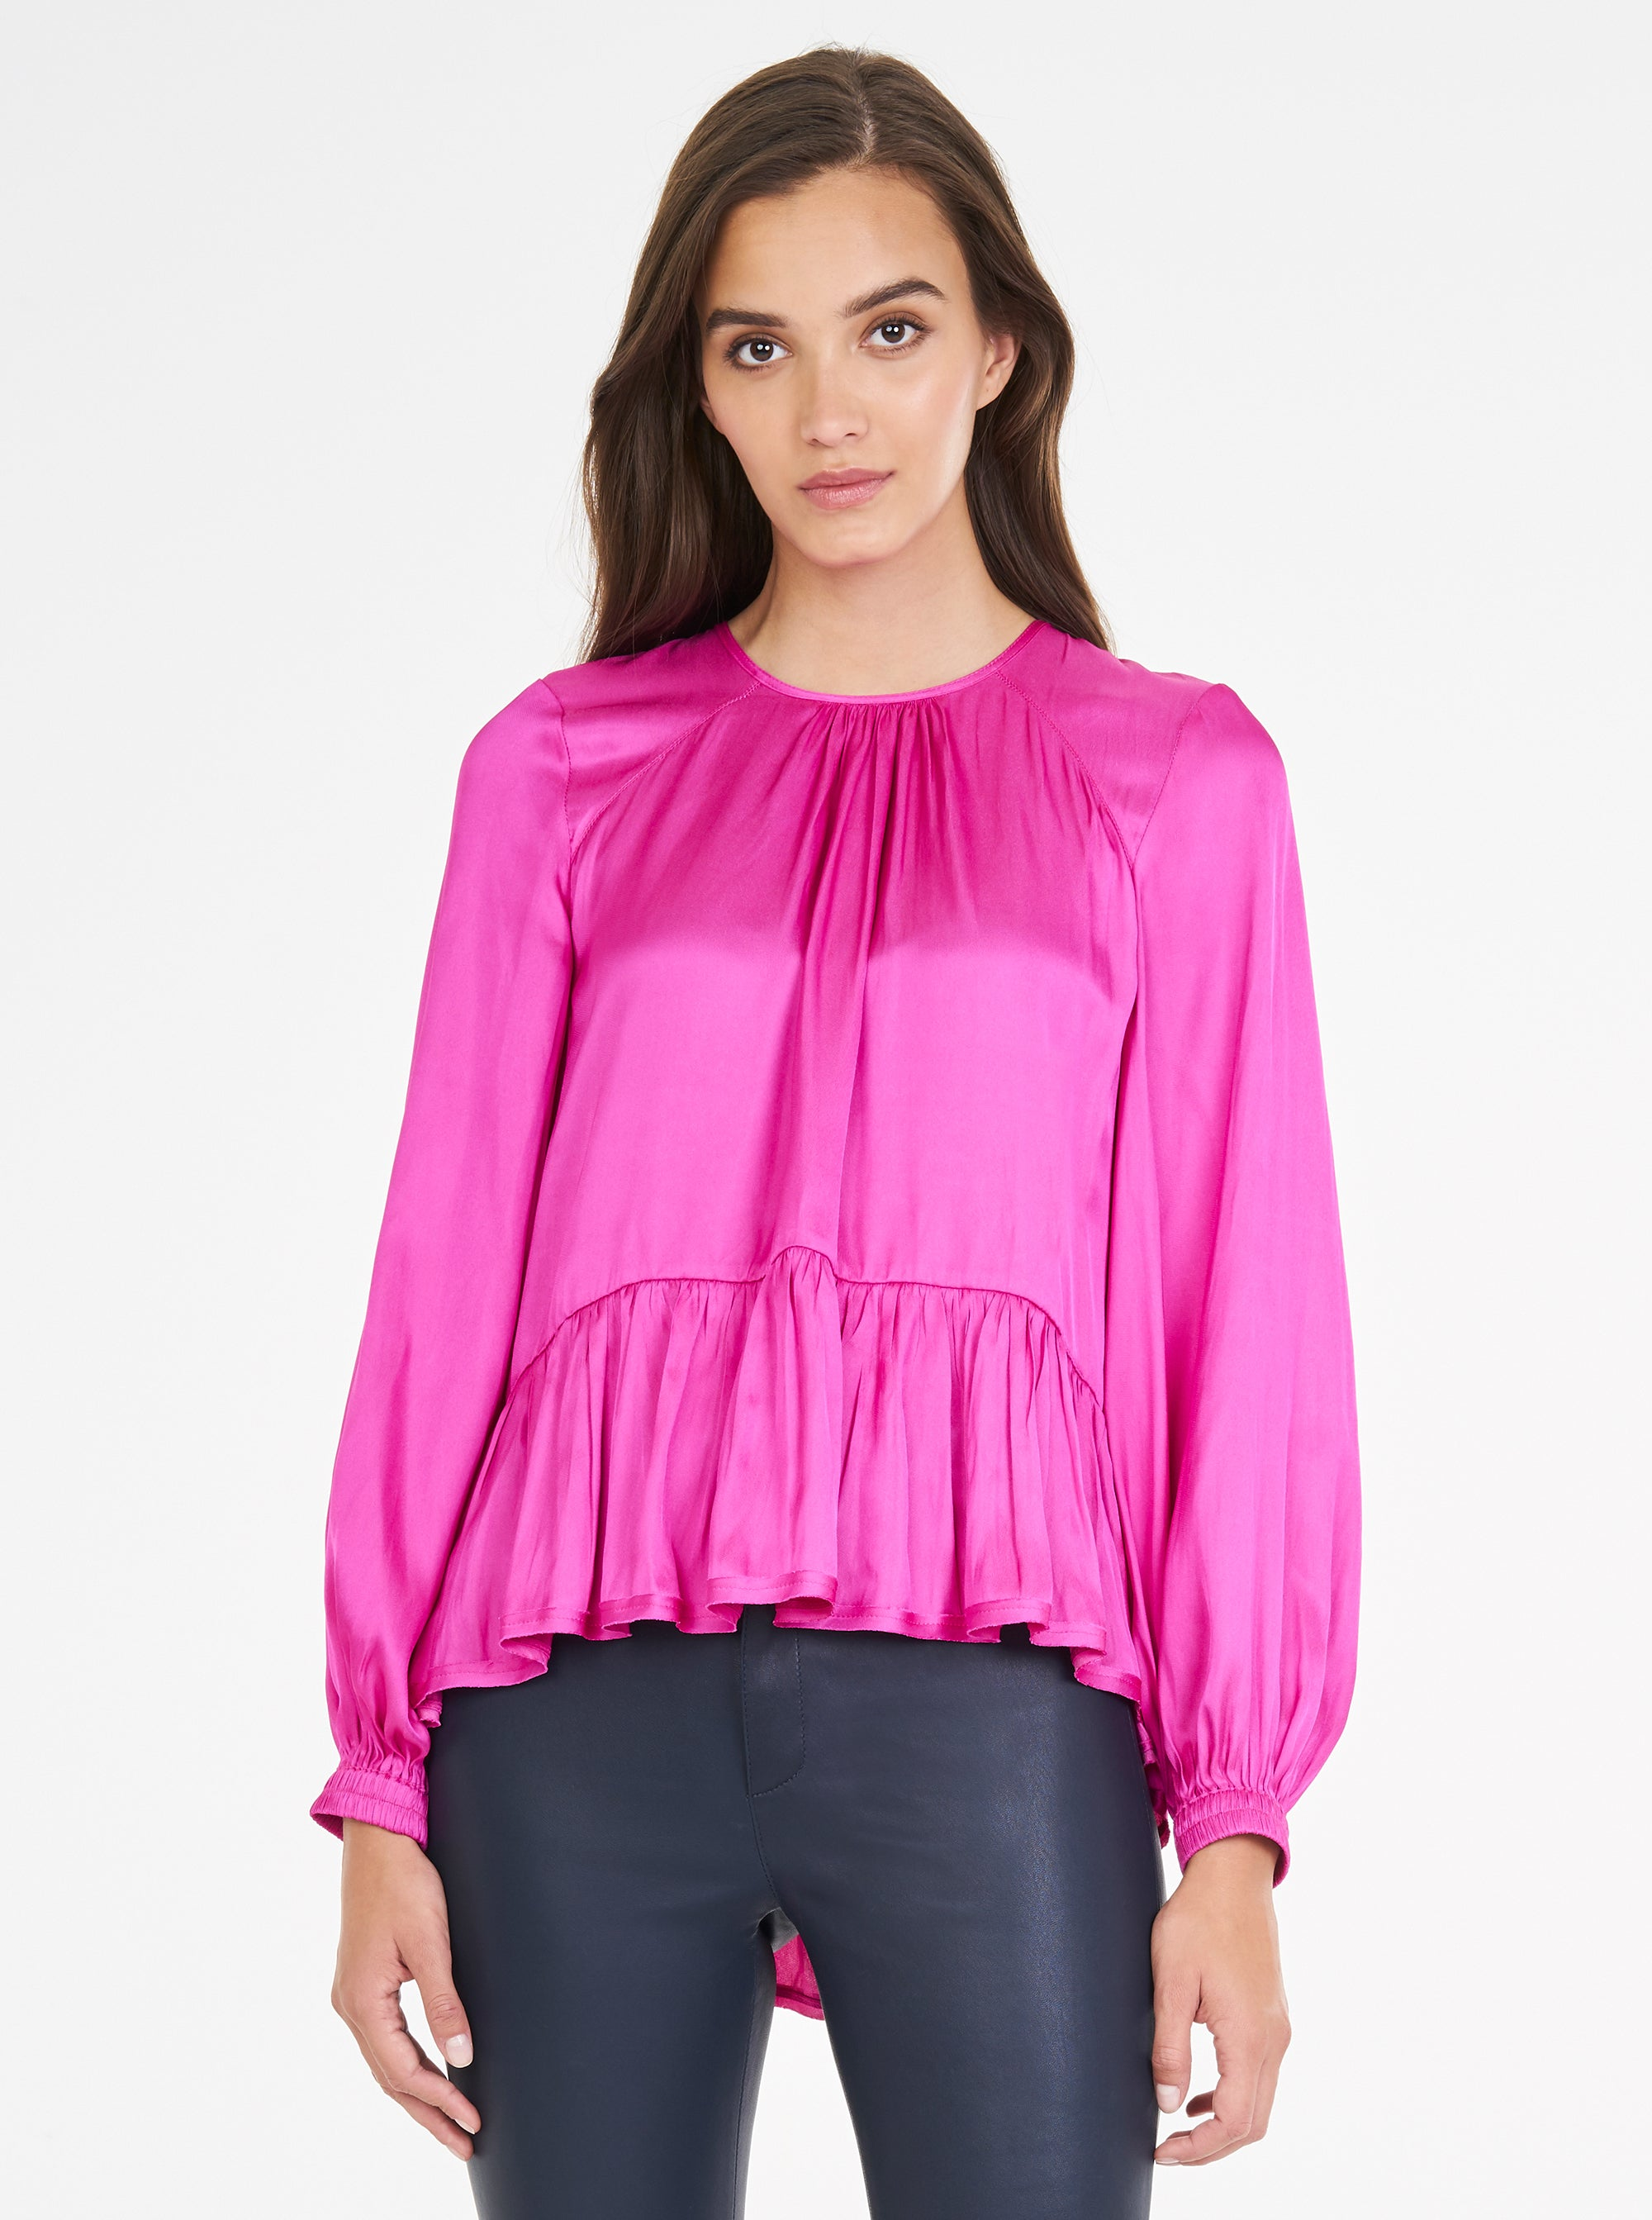 Look Again Balloon Sleeve Top